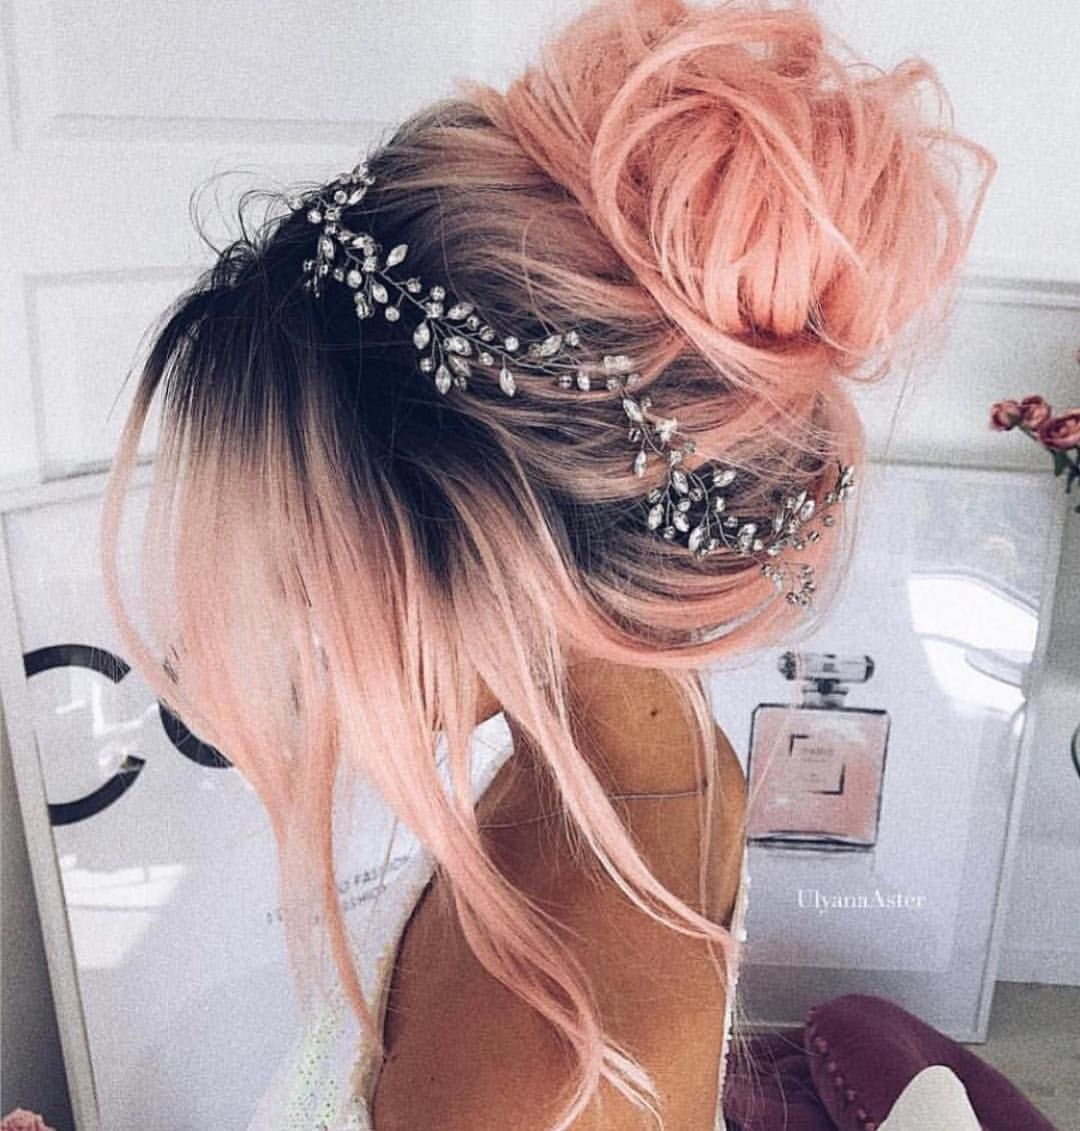 Pin by Rebecca Backes on Hair color | Pinterest | Hair coloring ...